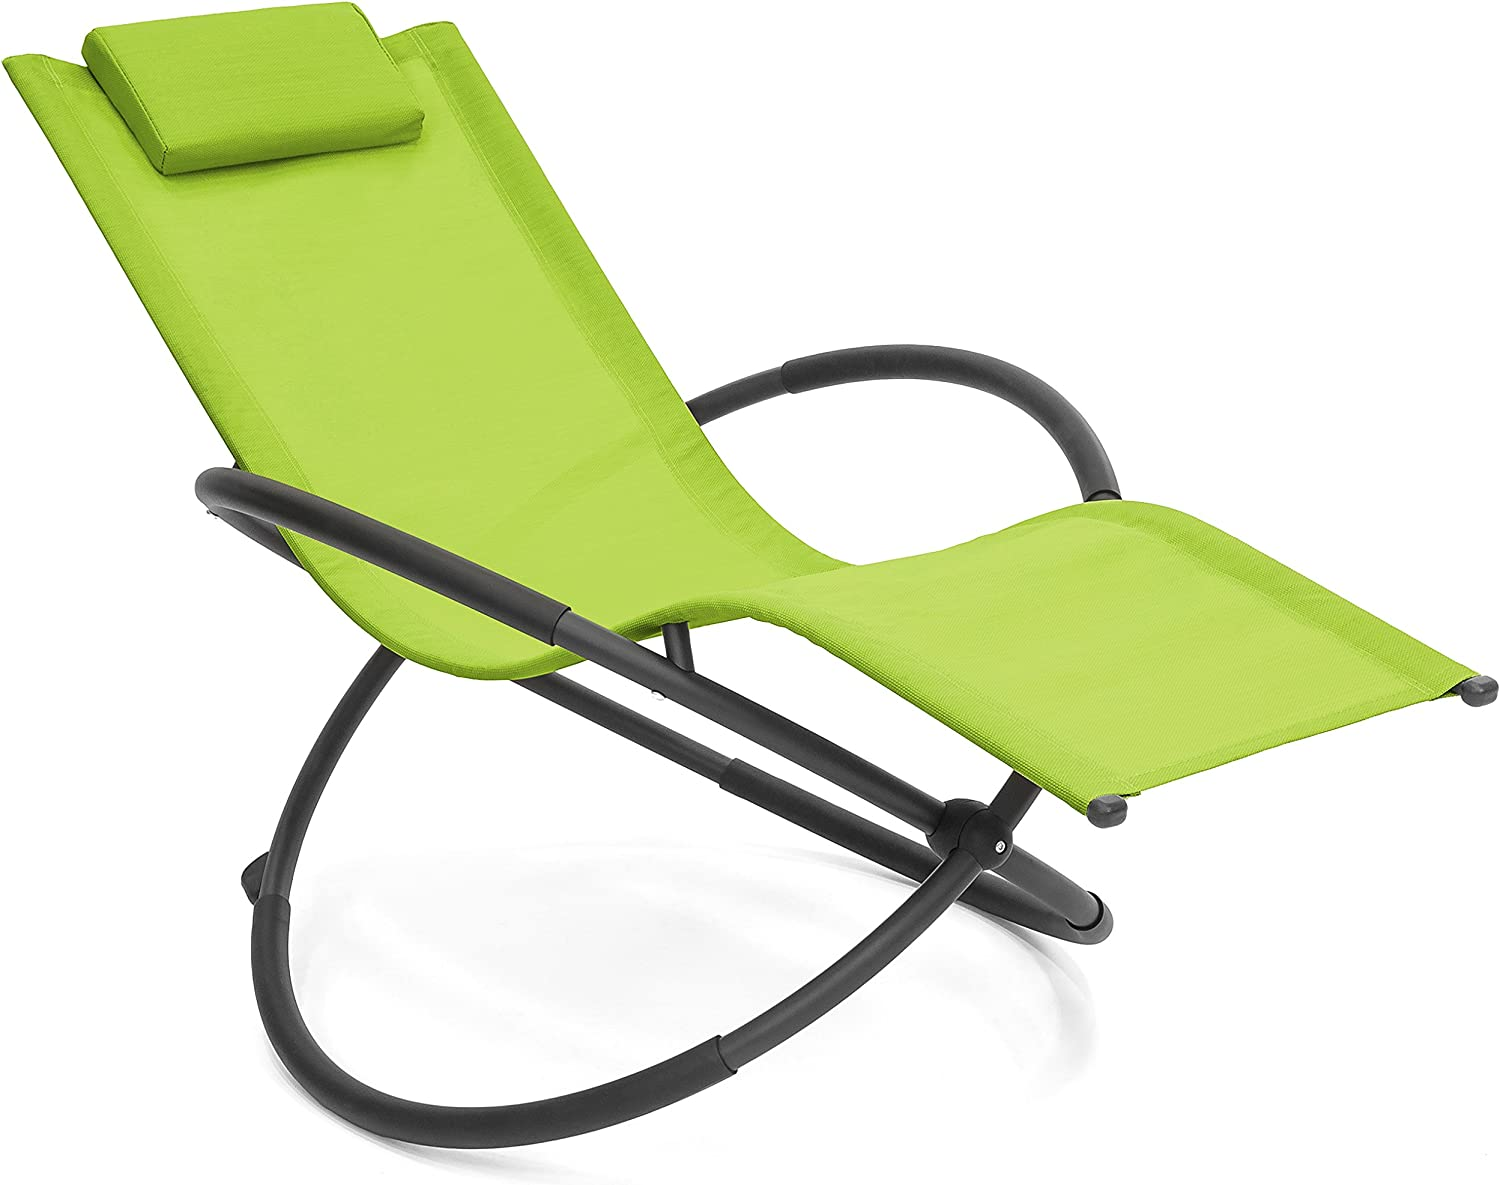 Best Choice Products Folding Orbital Zero Gravity Lounge Chair w Removable Pillow Green